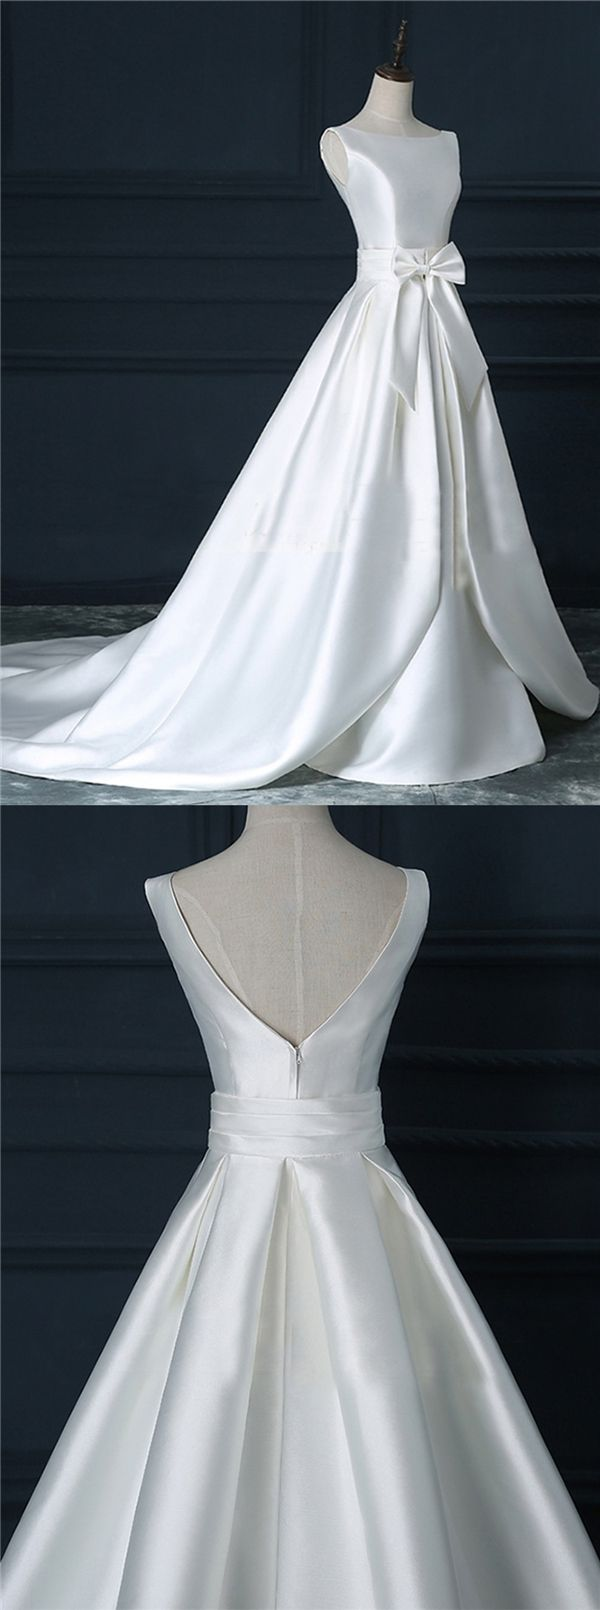 It doesn't have to have lace to be beautiful. Satin white super elegant wedding gown...wow!!!